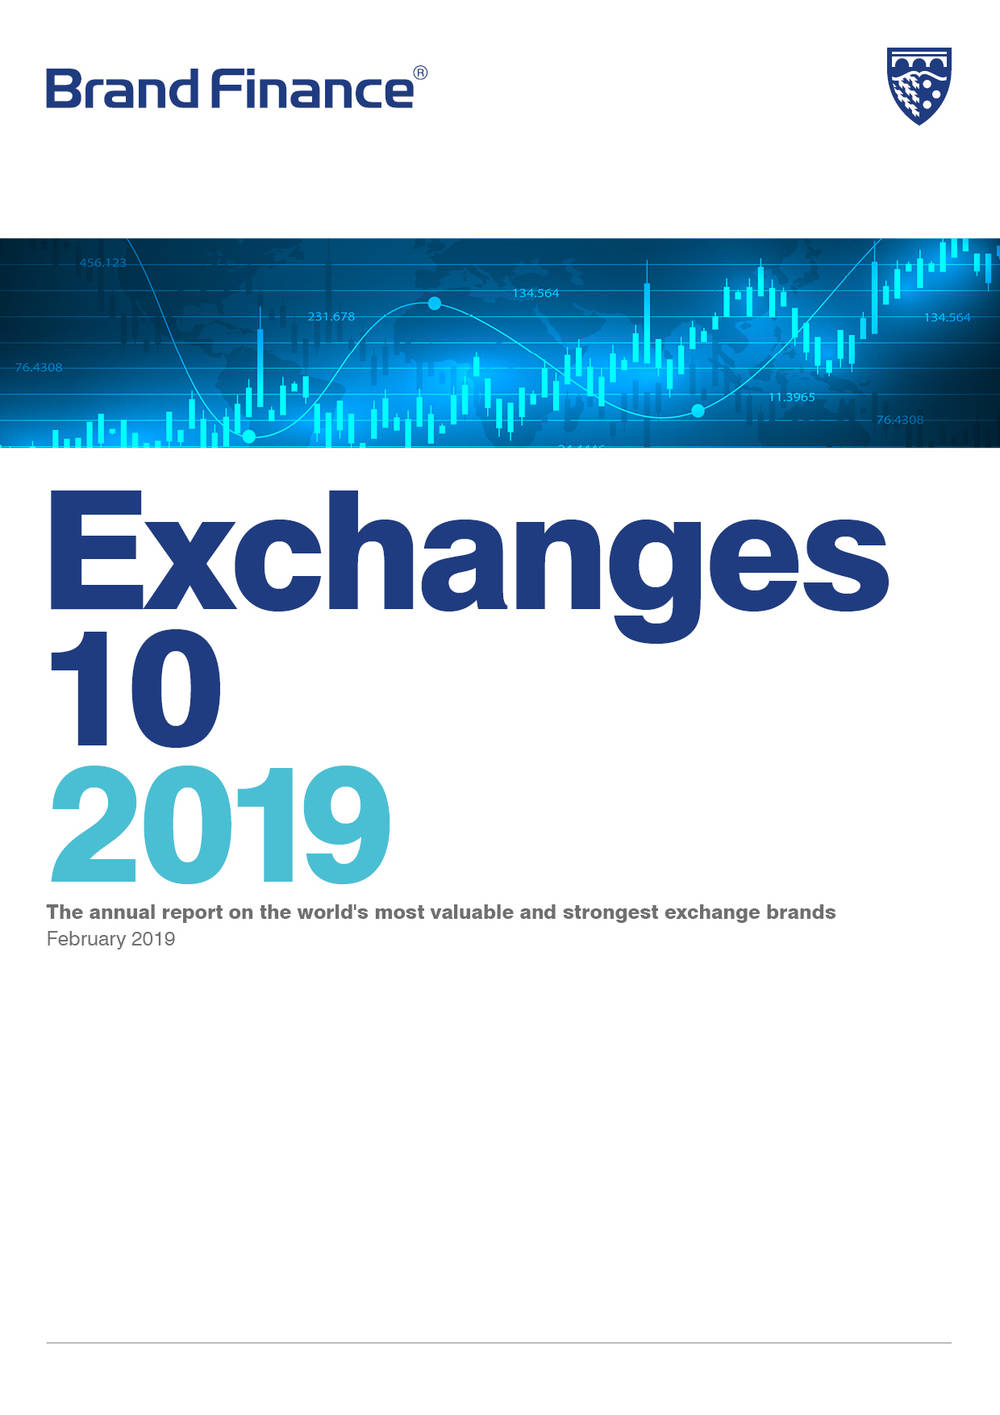 Brand Finance Exchanges 10 2019